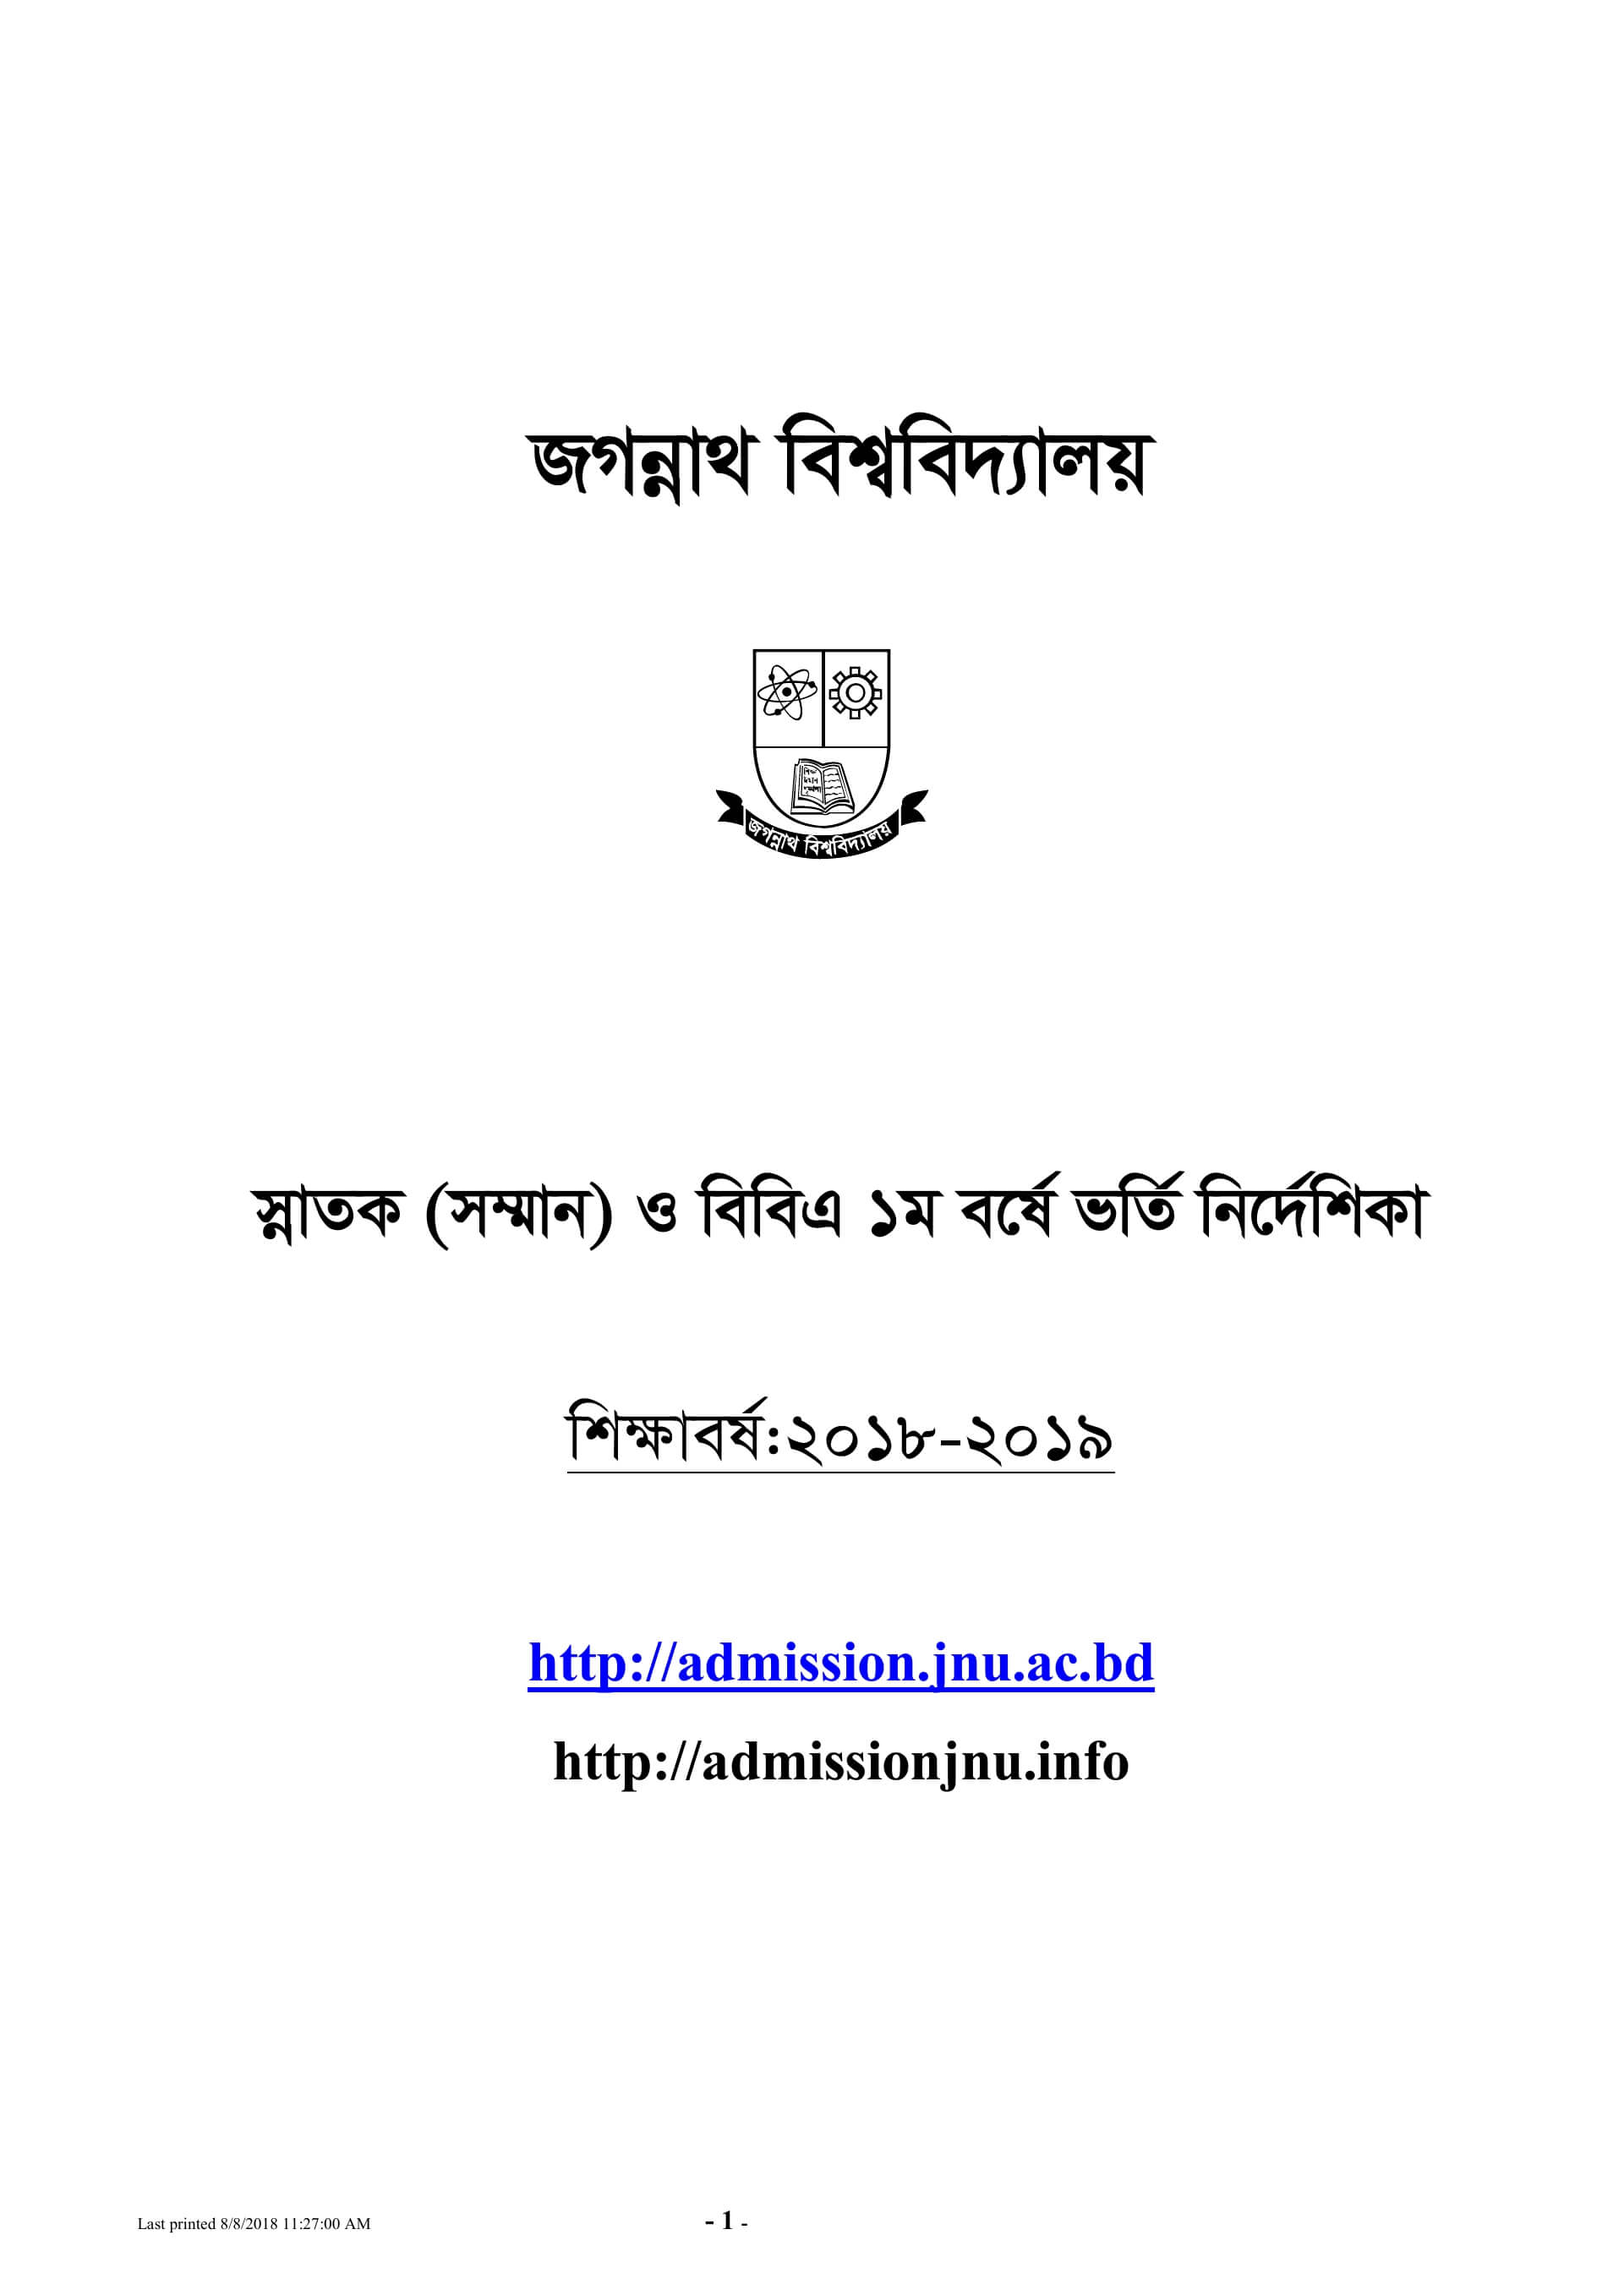 Jagannath University Admission Guideline